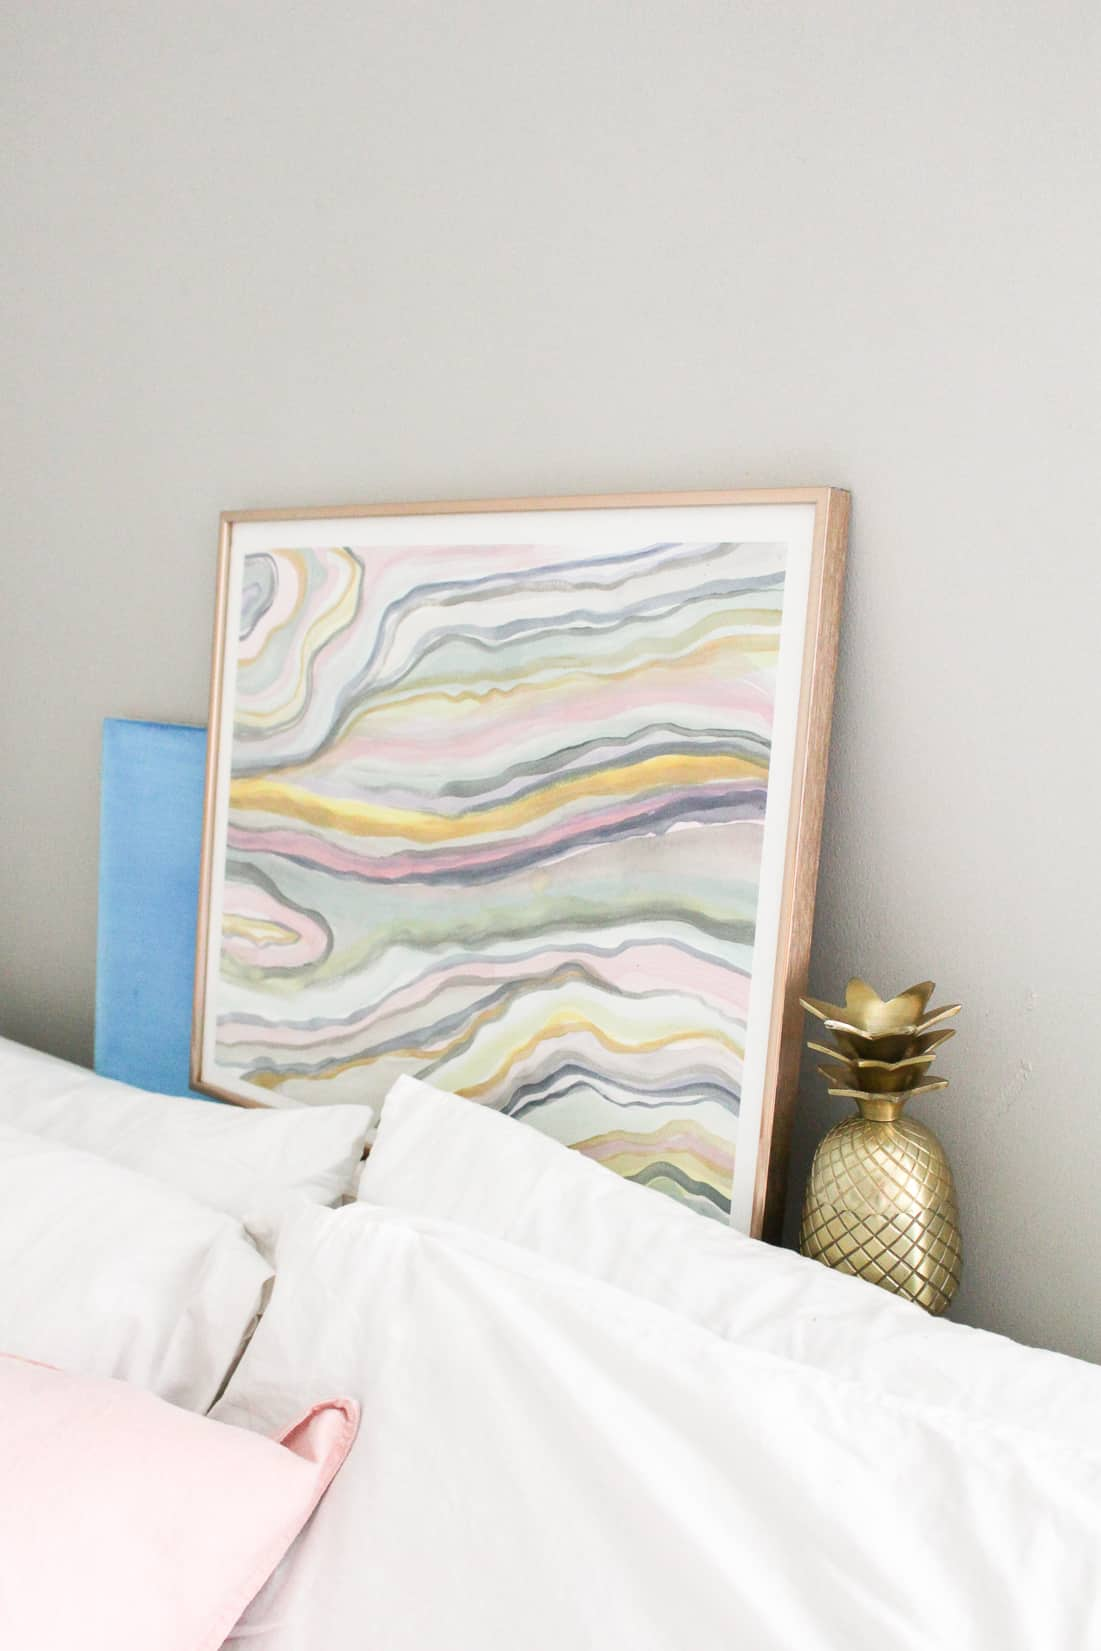 4 DIY Home Decor Projects to Try: DIY Anthropologie Hack Marbled Wall Art on Brit + Co | Fish & Bull